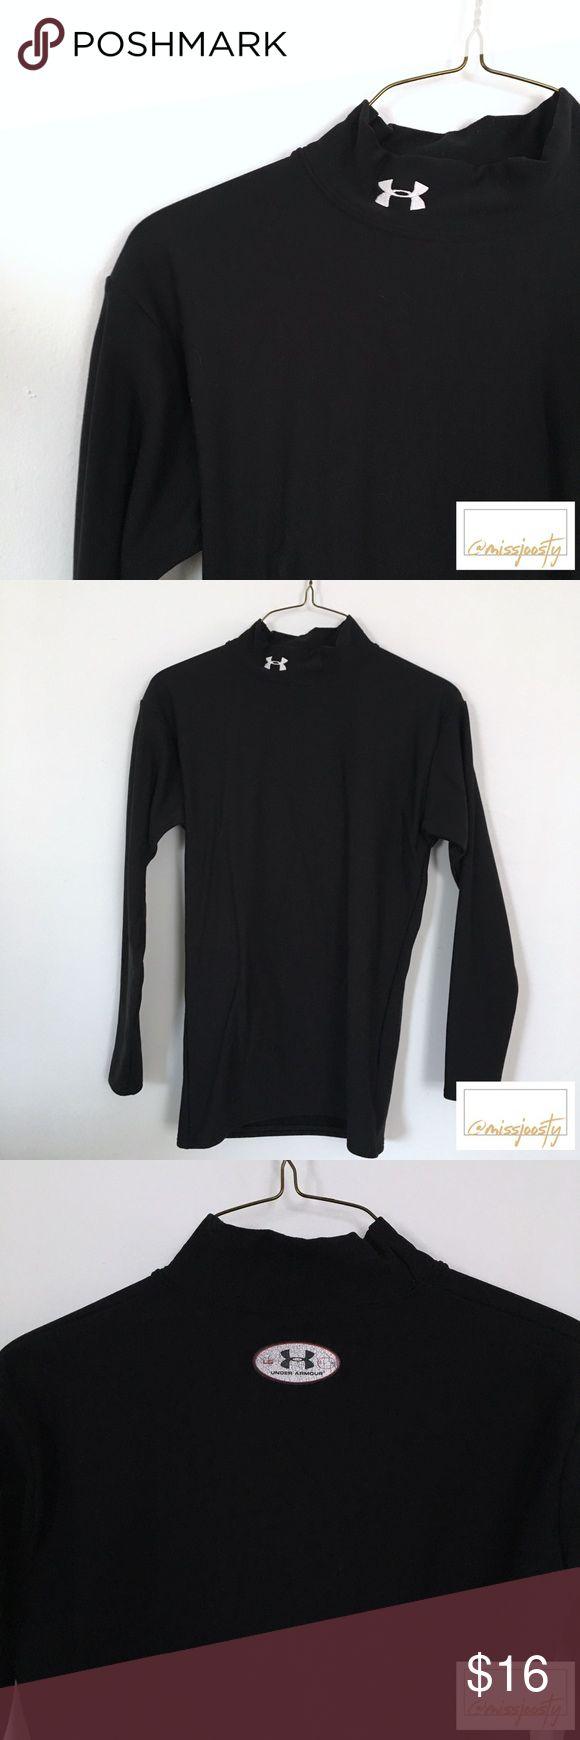 Under Armour Turtleneck, Men's L Top has gentle wear as shown in photos, in good condition. I'm happy to answer any questions you may have! Bundle with another item and save 10% 💖✨ Under Armour Shirts